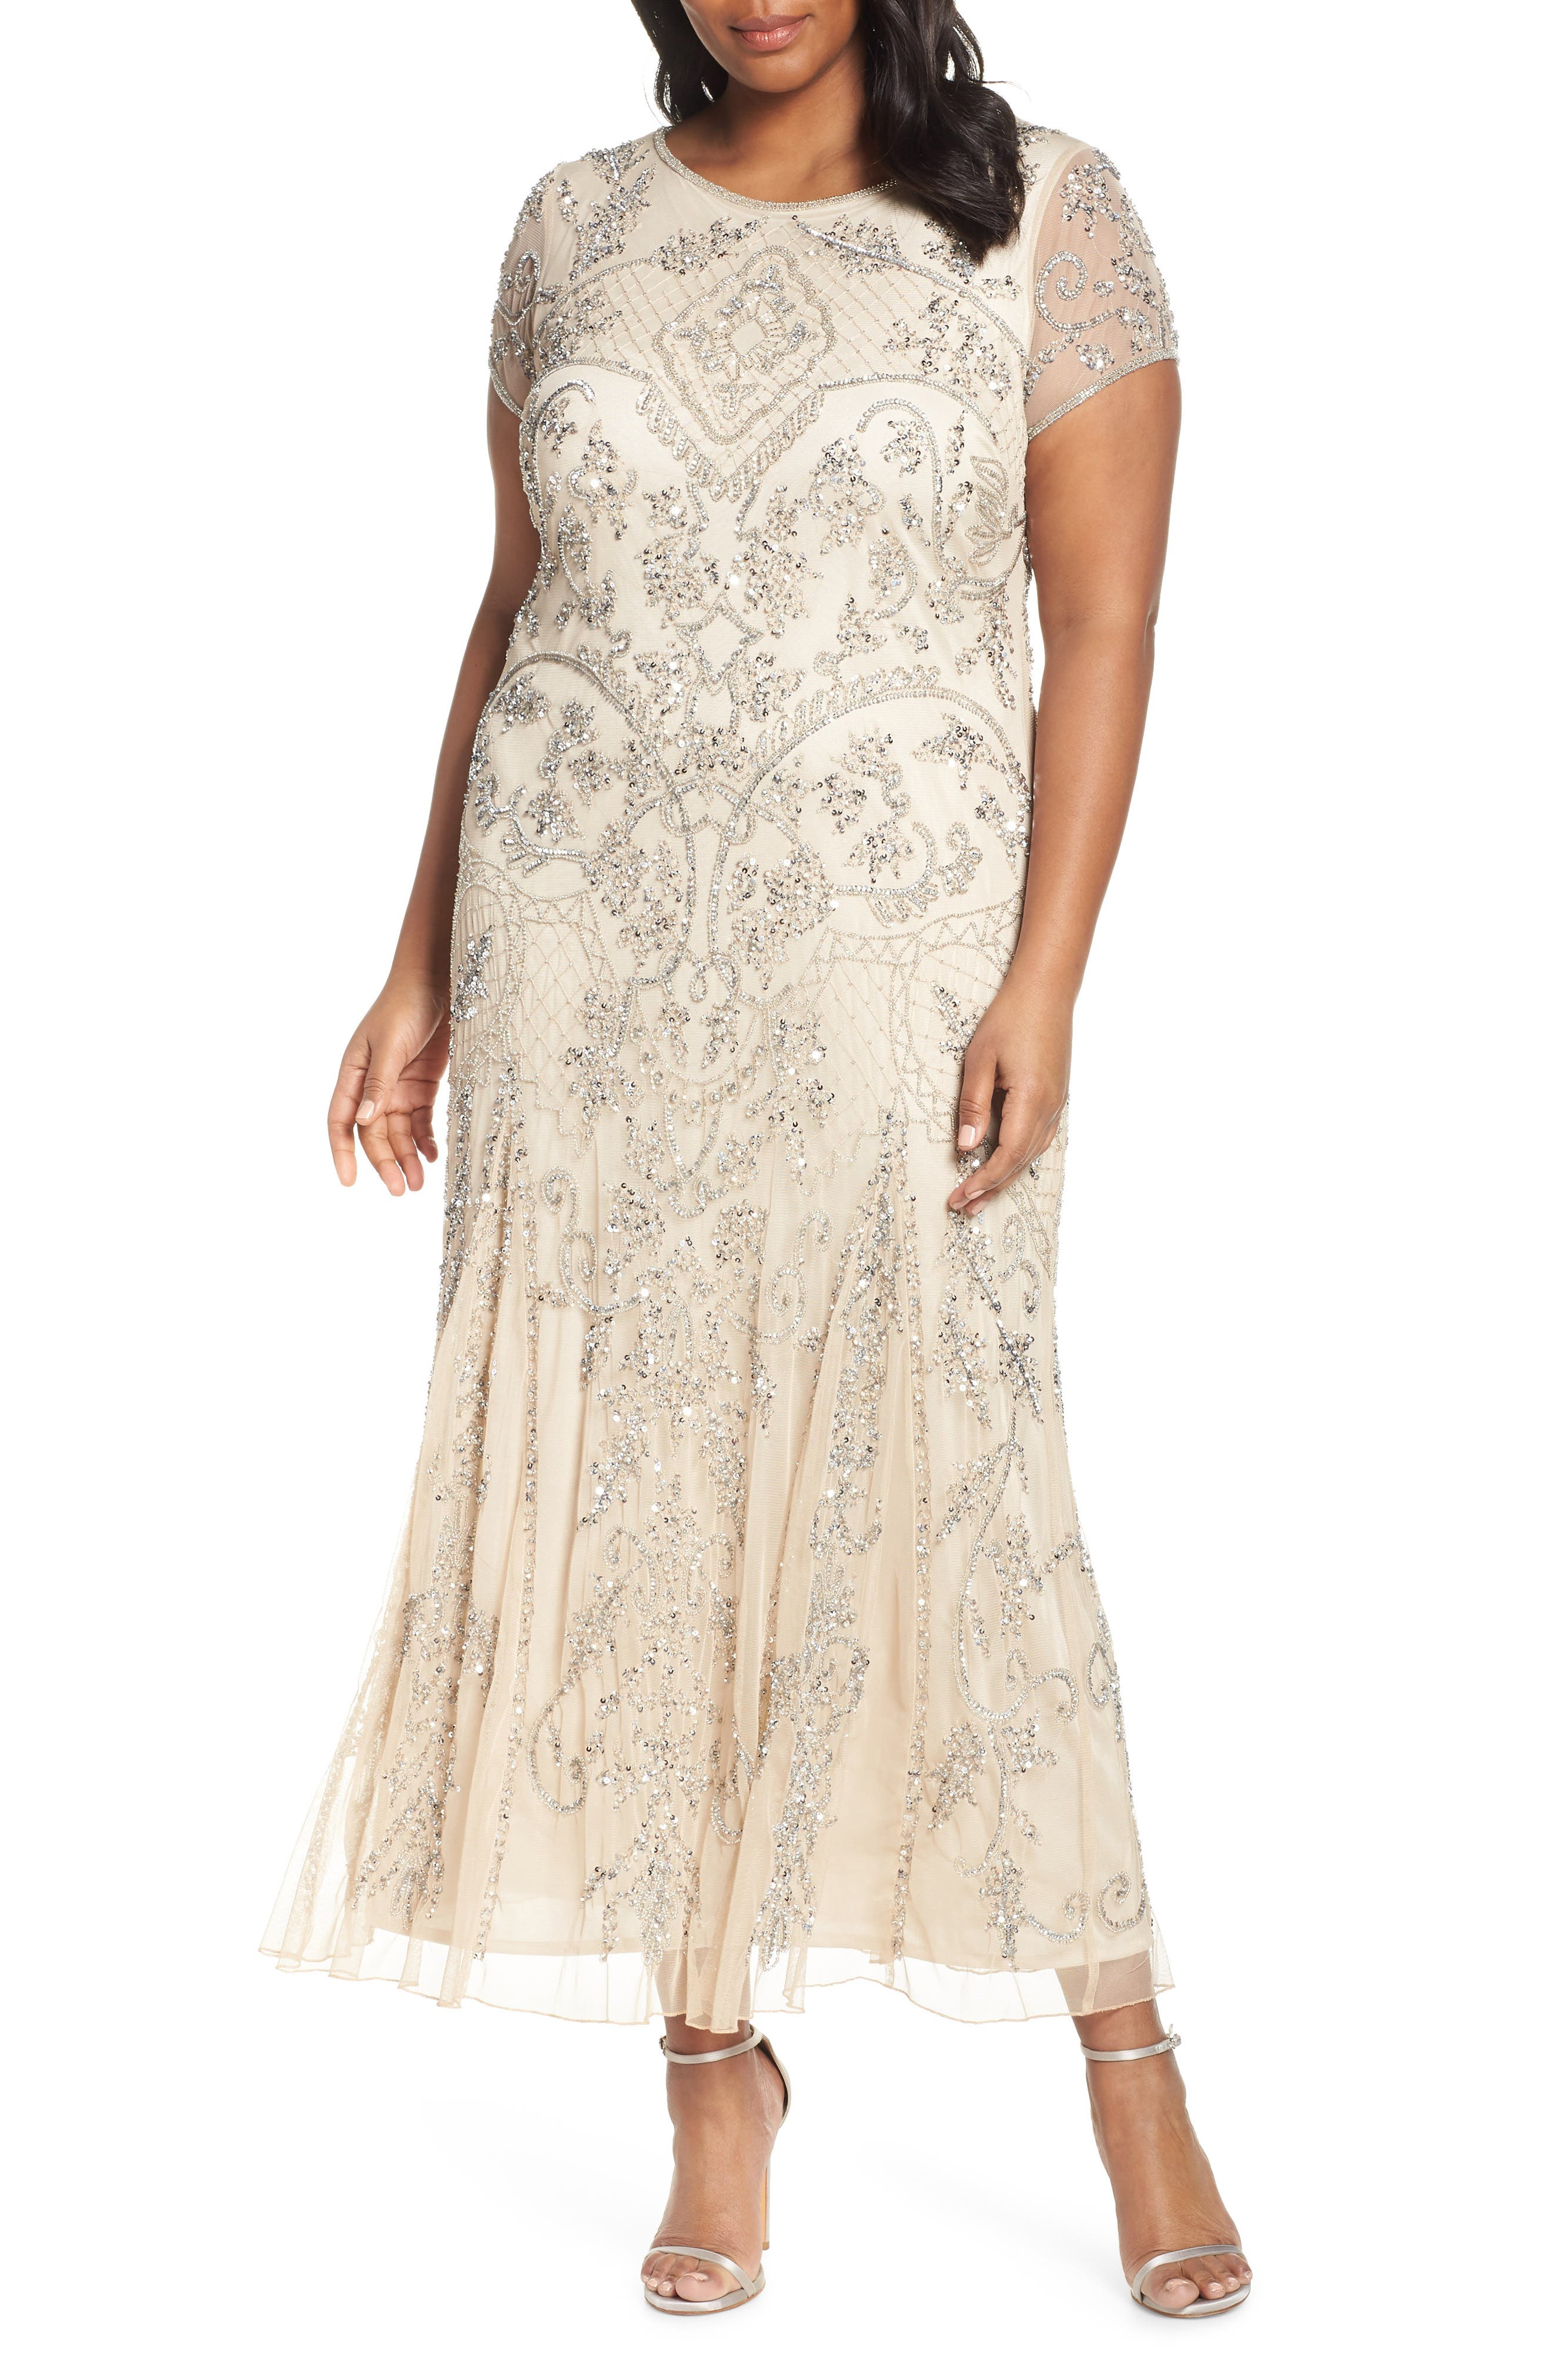 PISARRO NIGHTS, Beaded Short Sleeve Column Gown, Main thumbnail 1, color, CHAMPAGNE/ SILVER